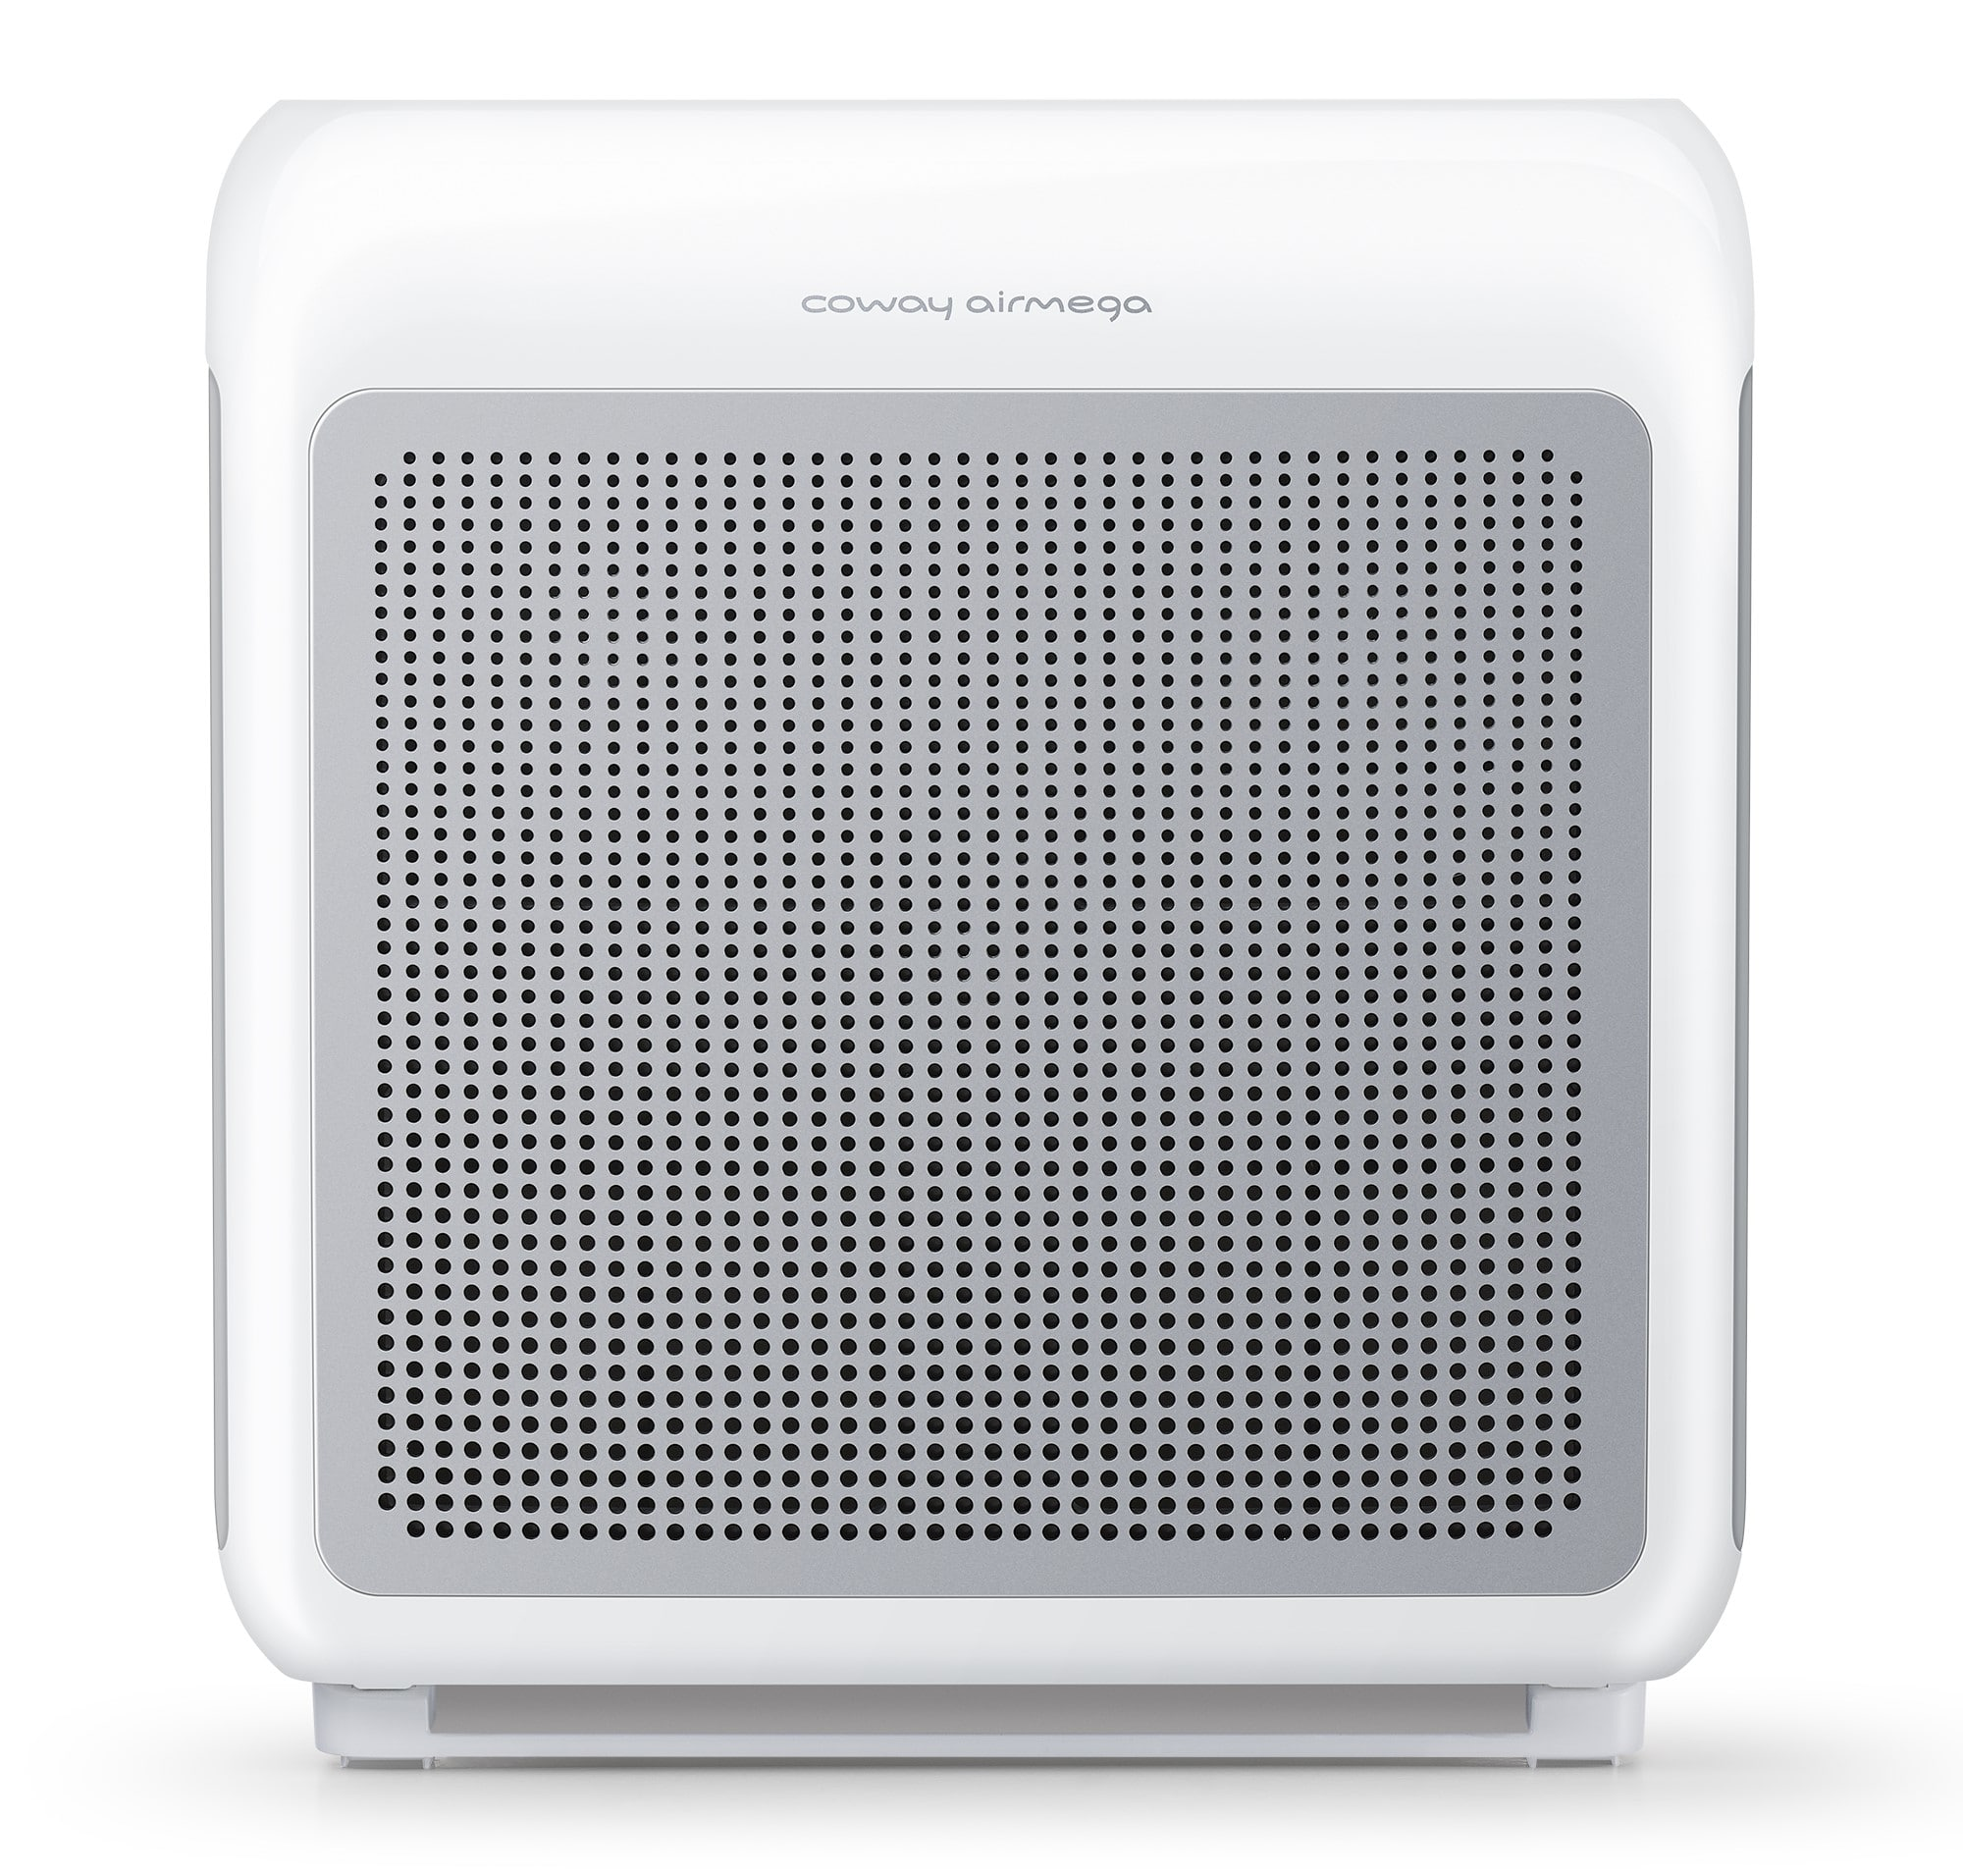 Coway Airmega 200M White Air Purifier with True HEPA and Smart Mode (Covers 361 sq. ft.) $133.88